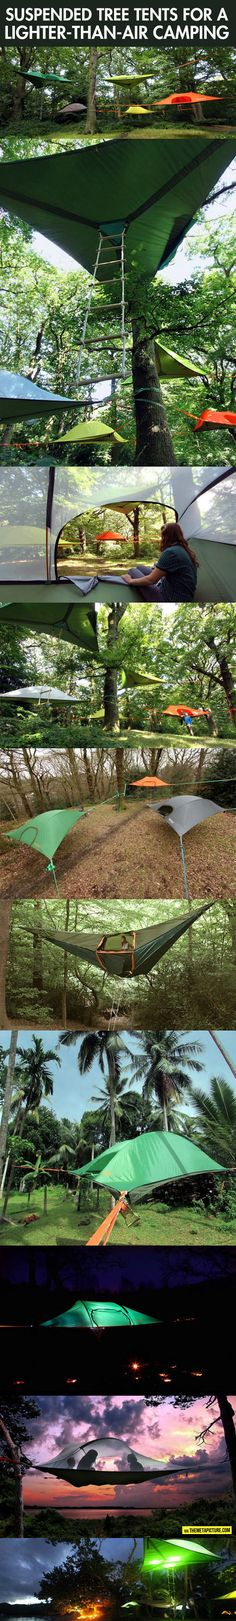 Suspended Tree Tents - The Meta Picture